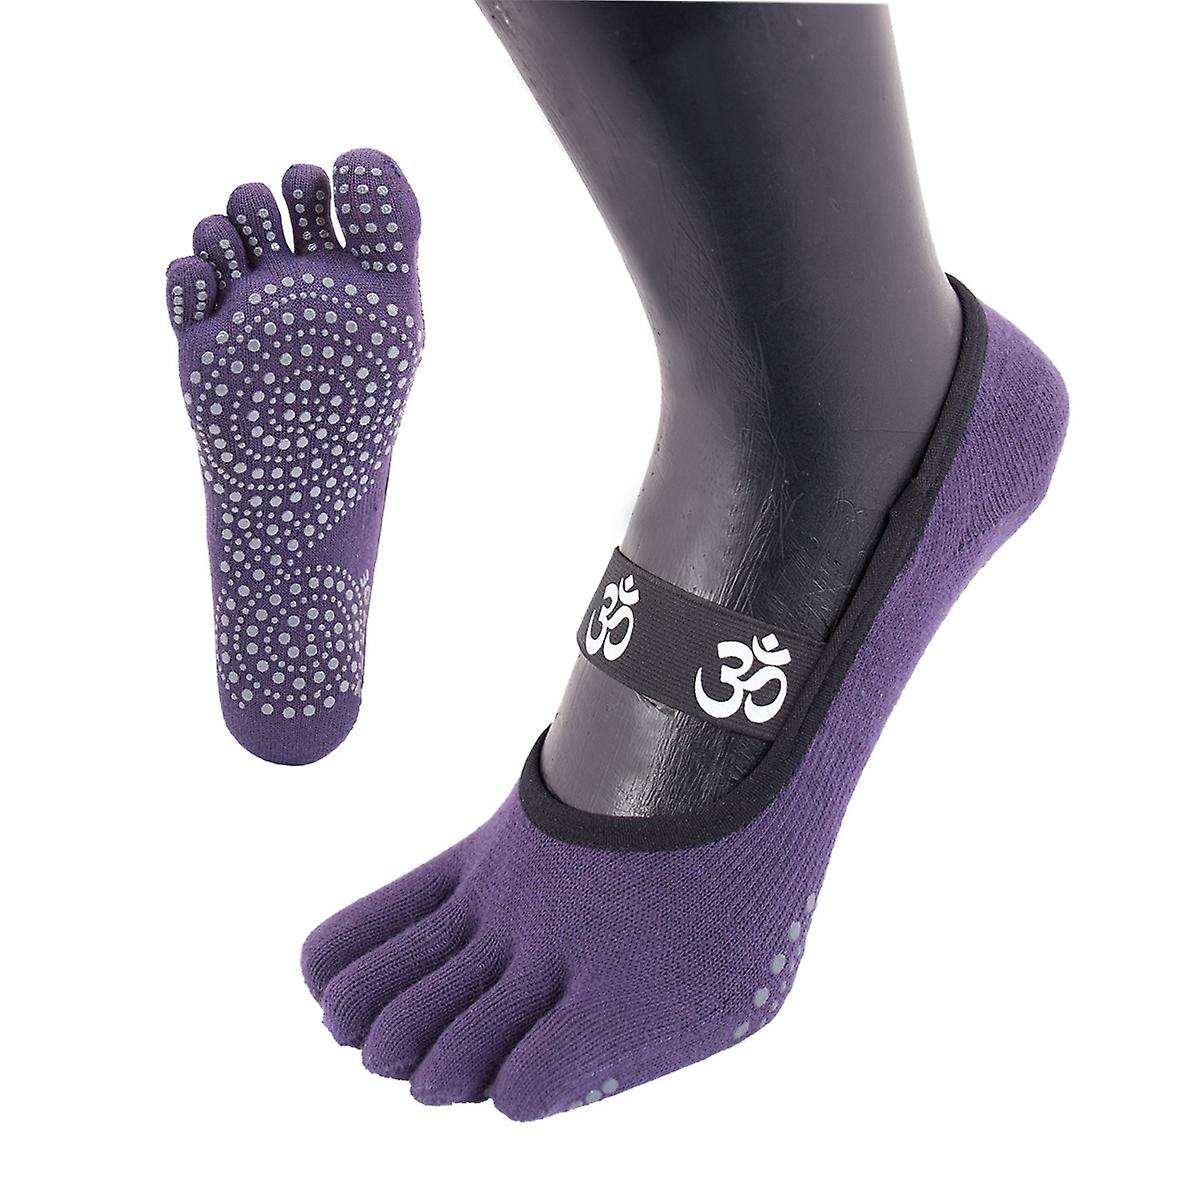 YOGA&PILATES - Anti-Slip OM Foot Cover